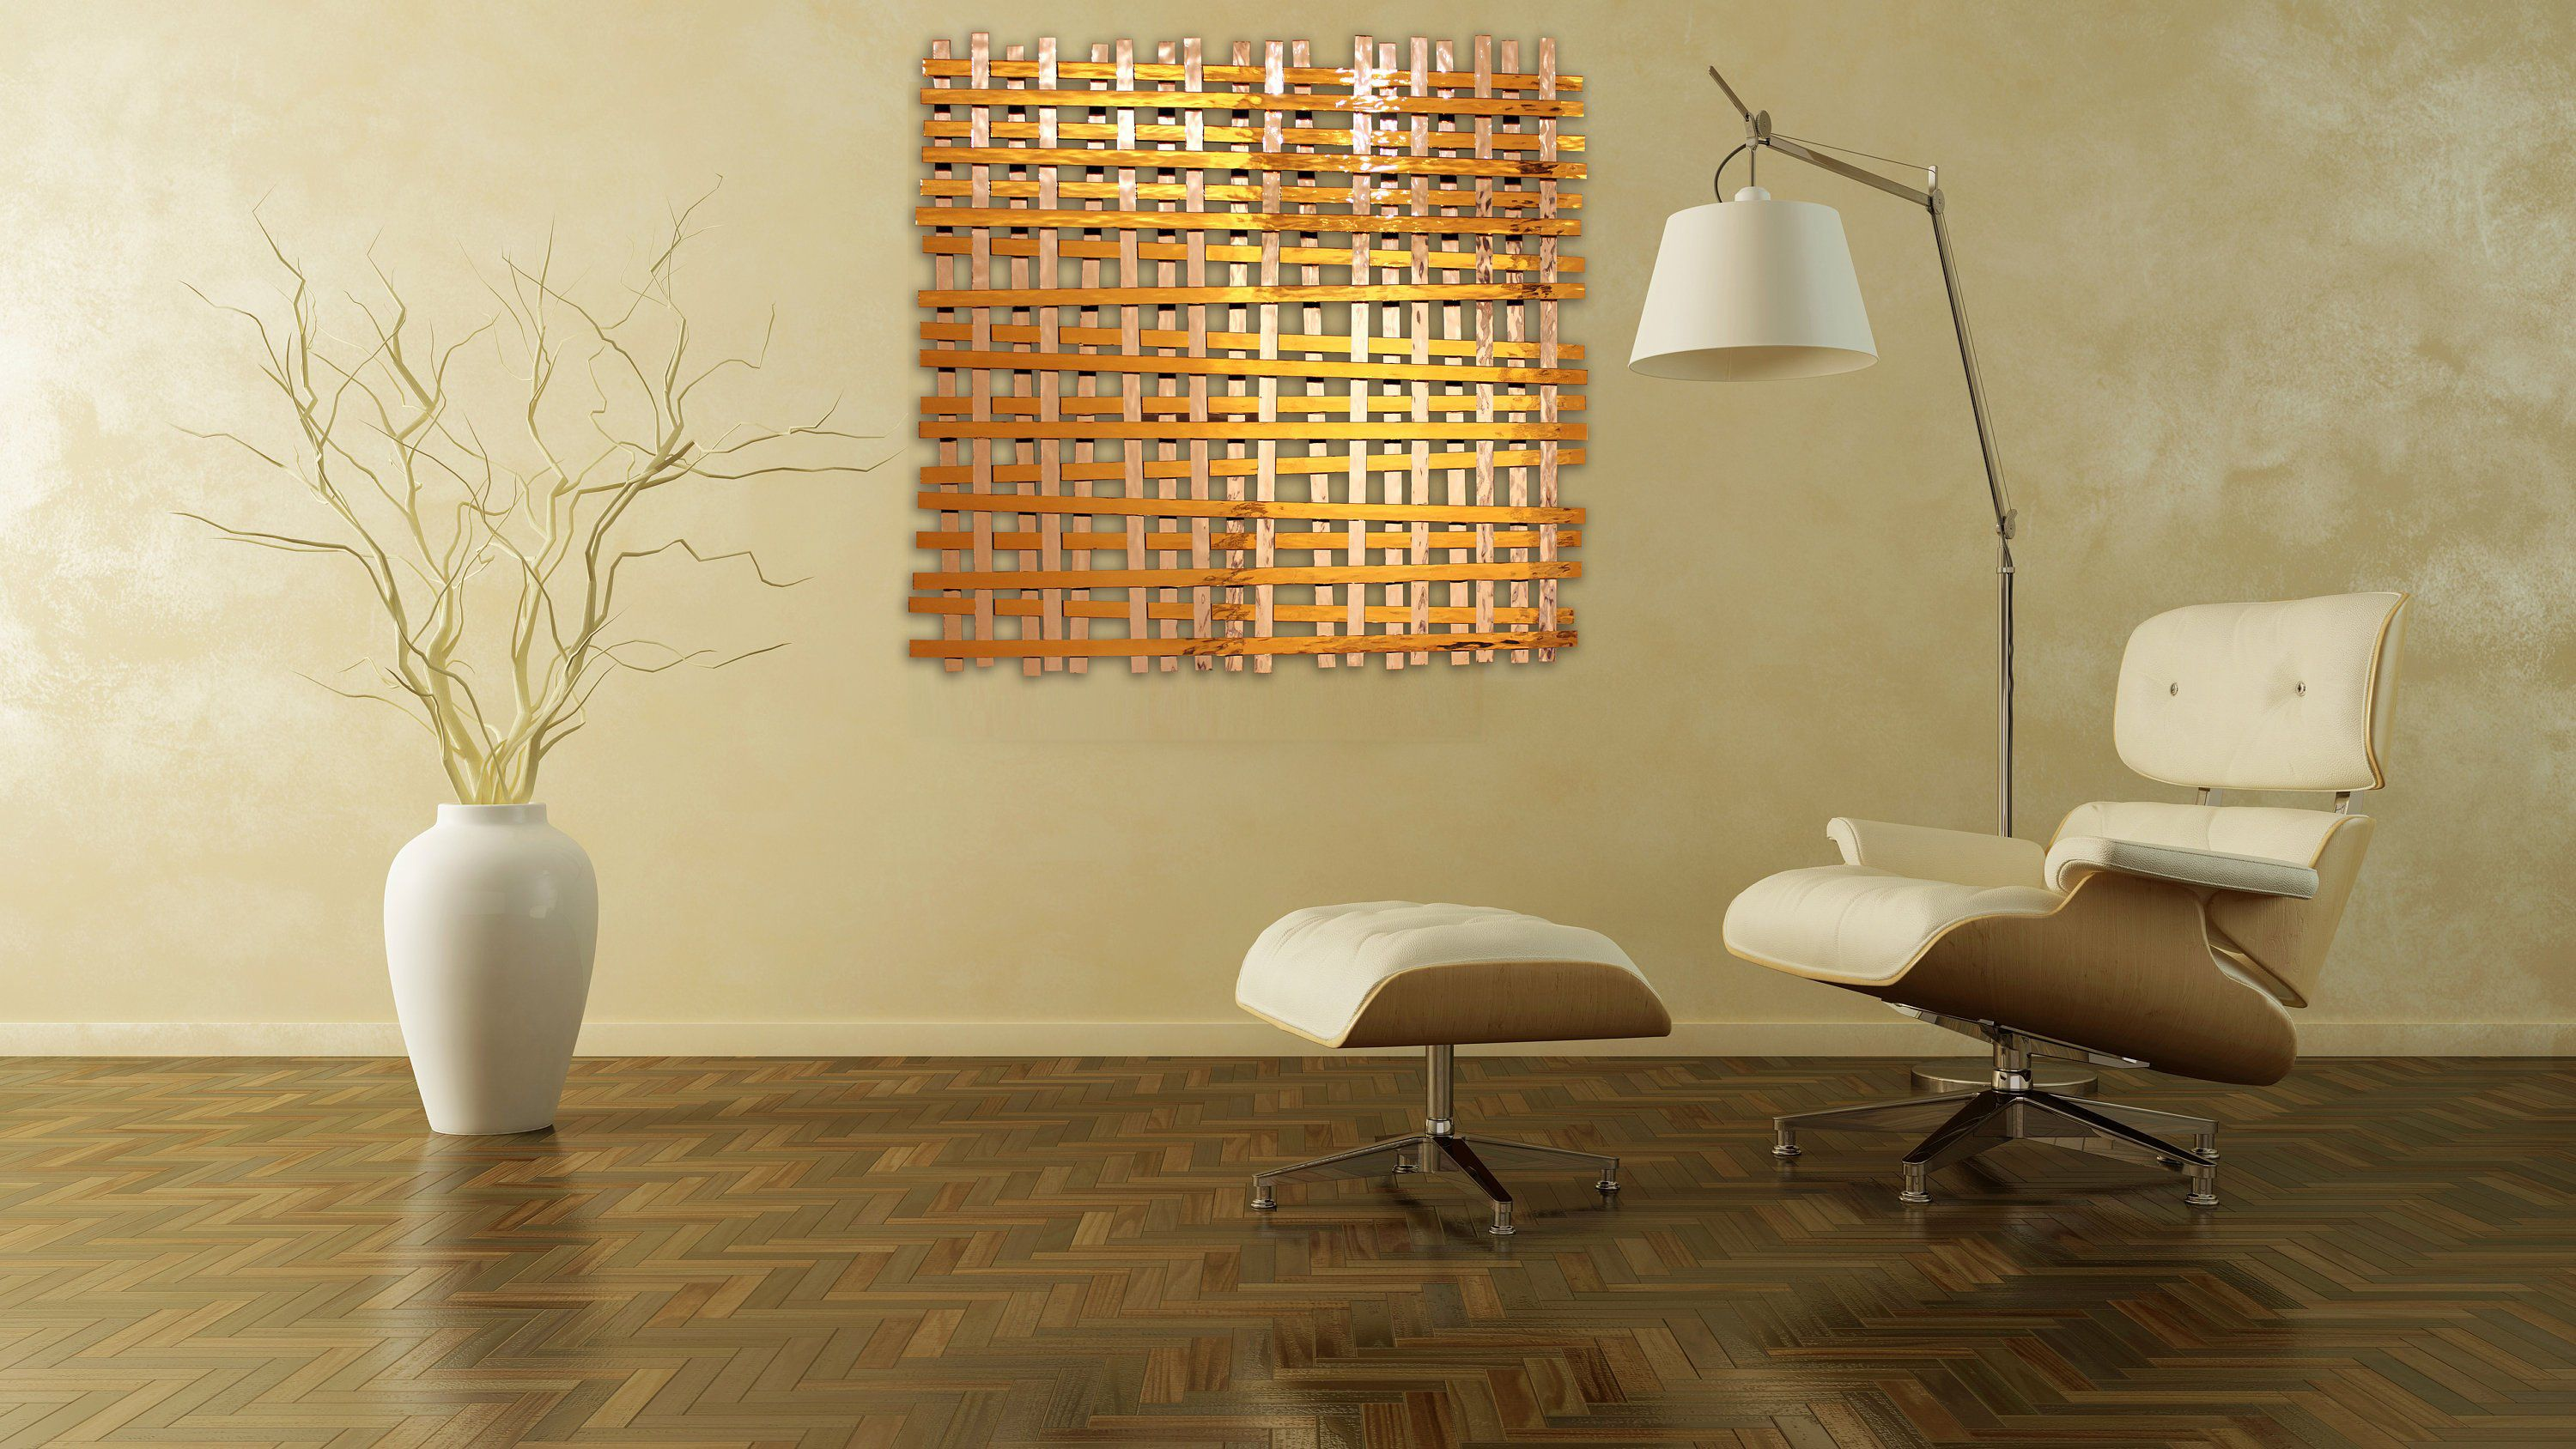 Glass and Metal Wall Sculpture